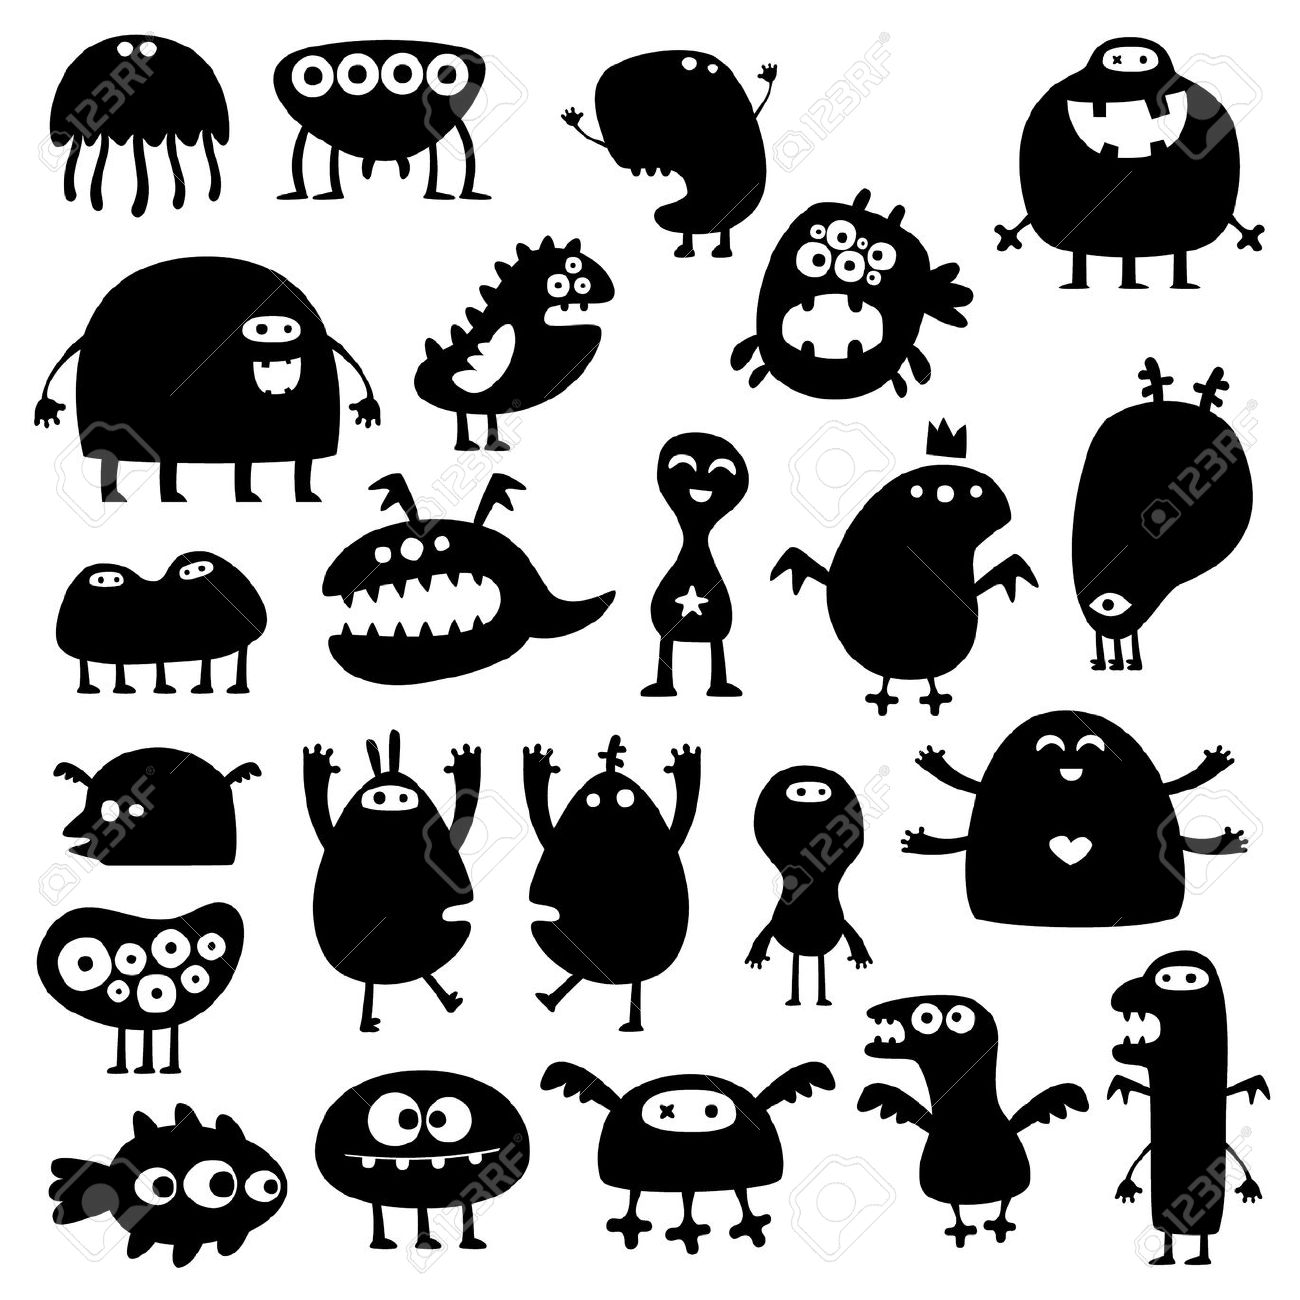 Collection Of Cartoon Funny Monsters Silhouettes Royalty Free.